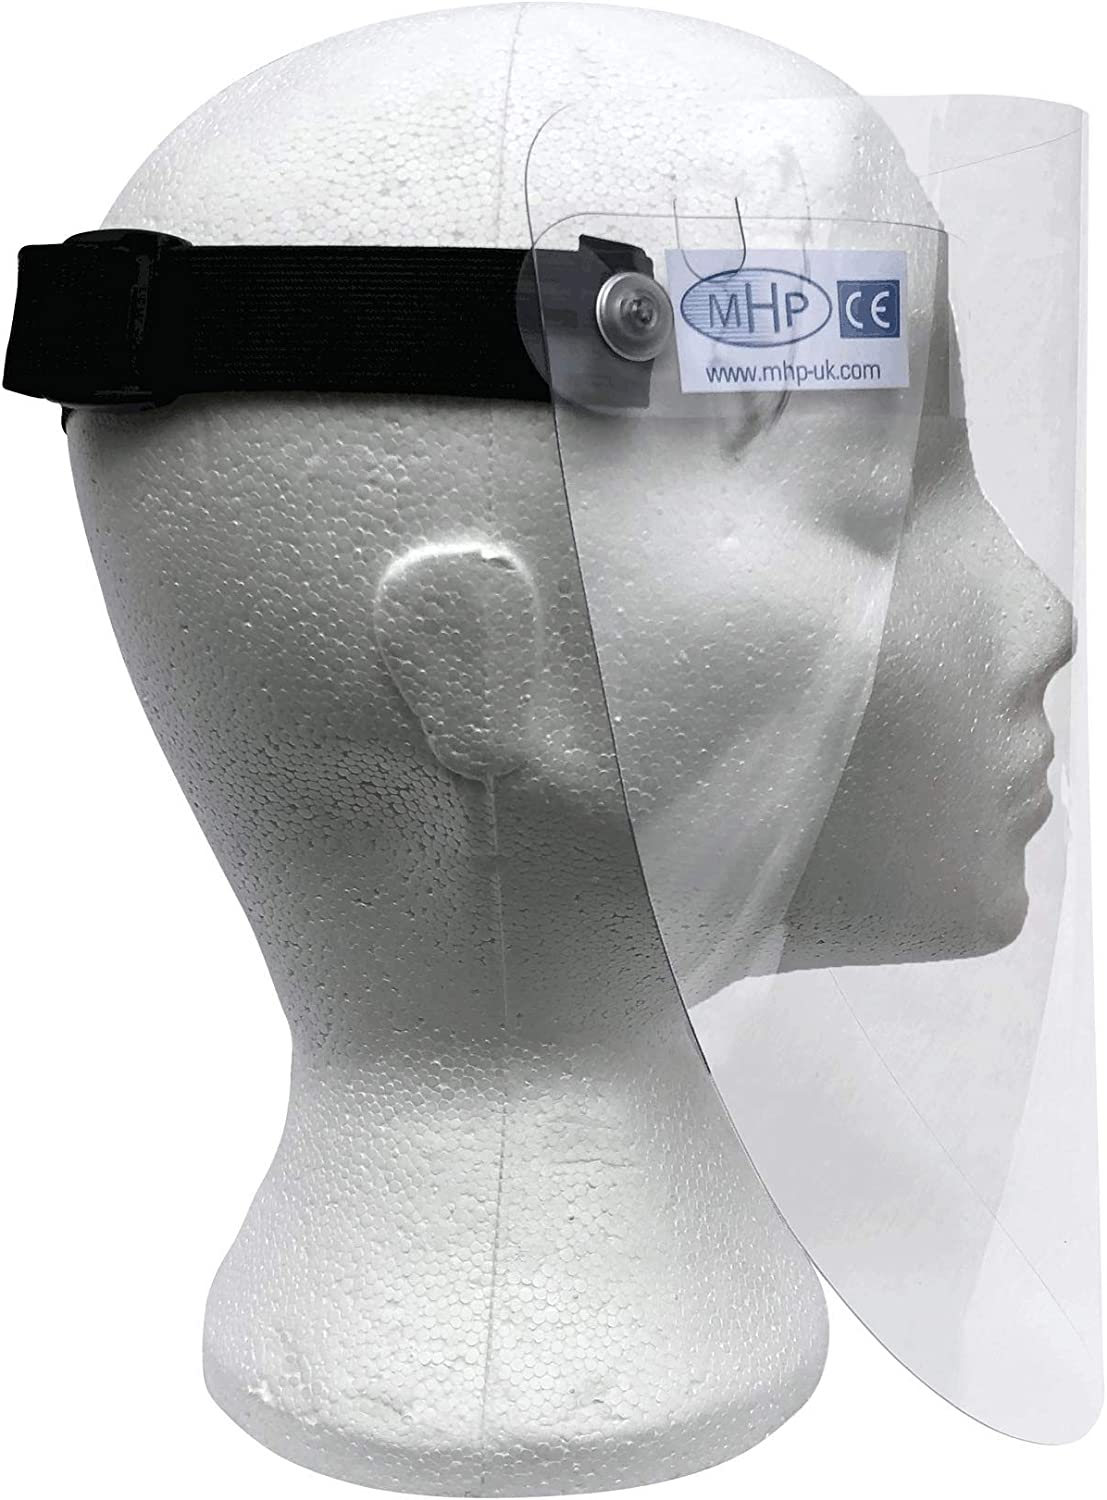 Easy Clean x 2 MHP Safety Face Visor Shield glass clear material Adjustable Elastic Headband